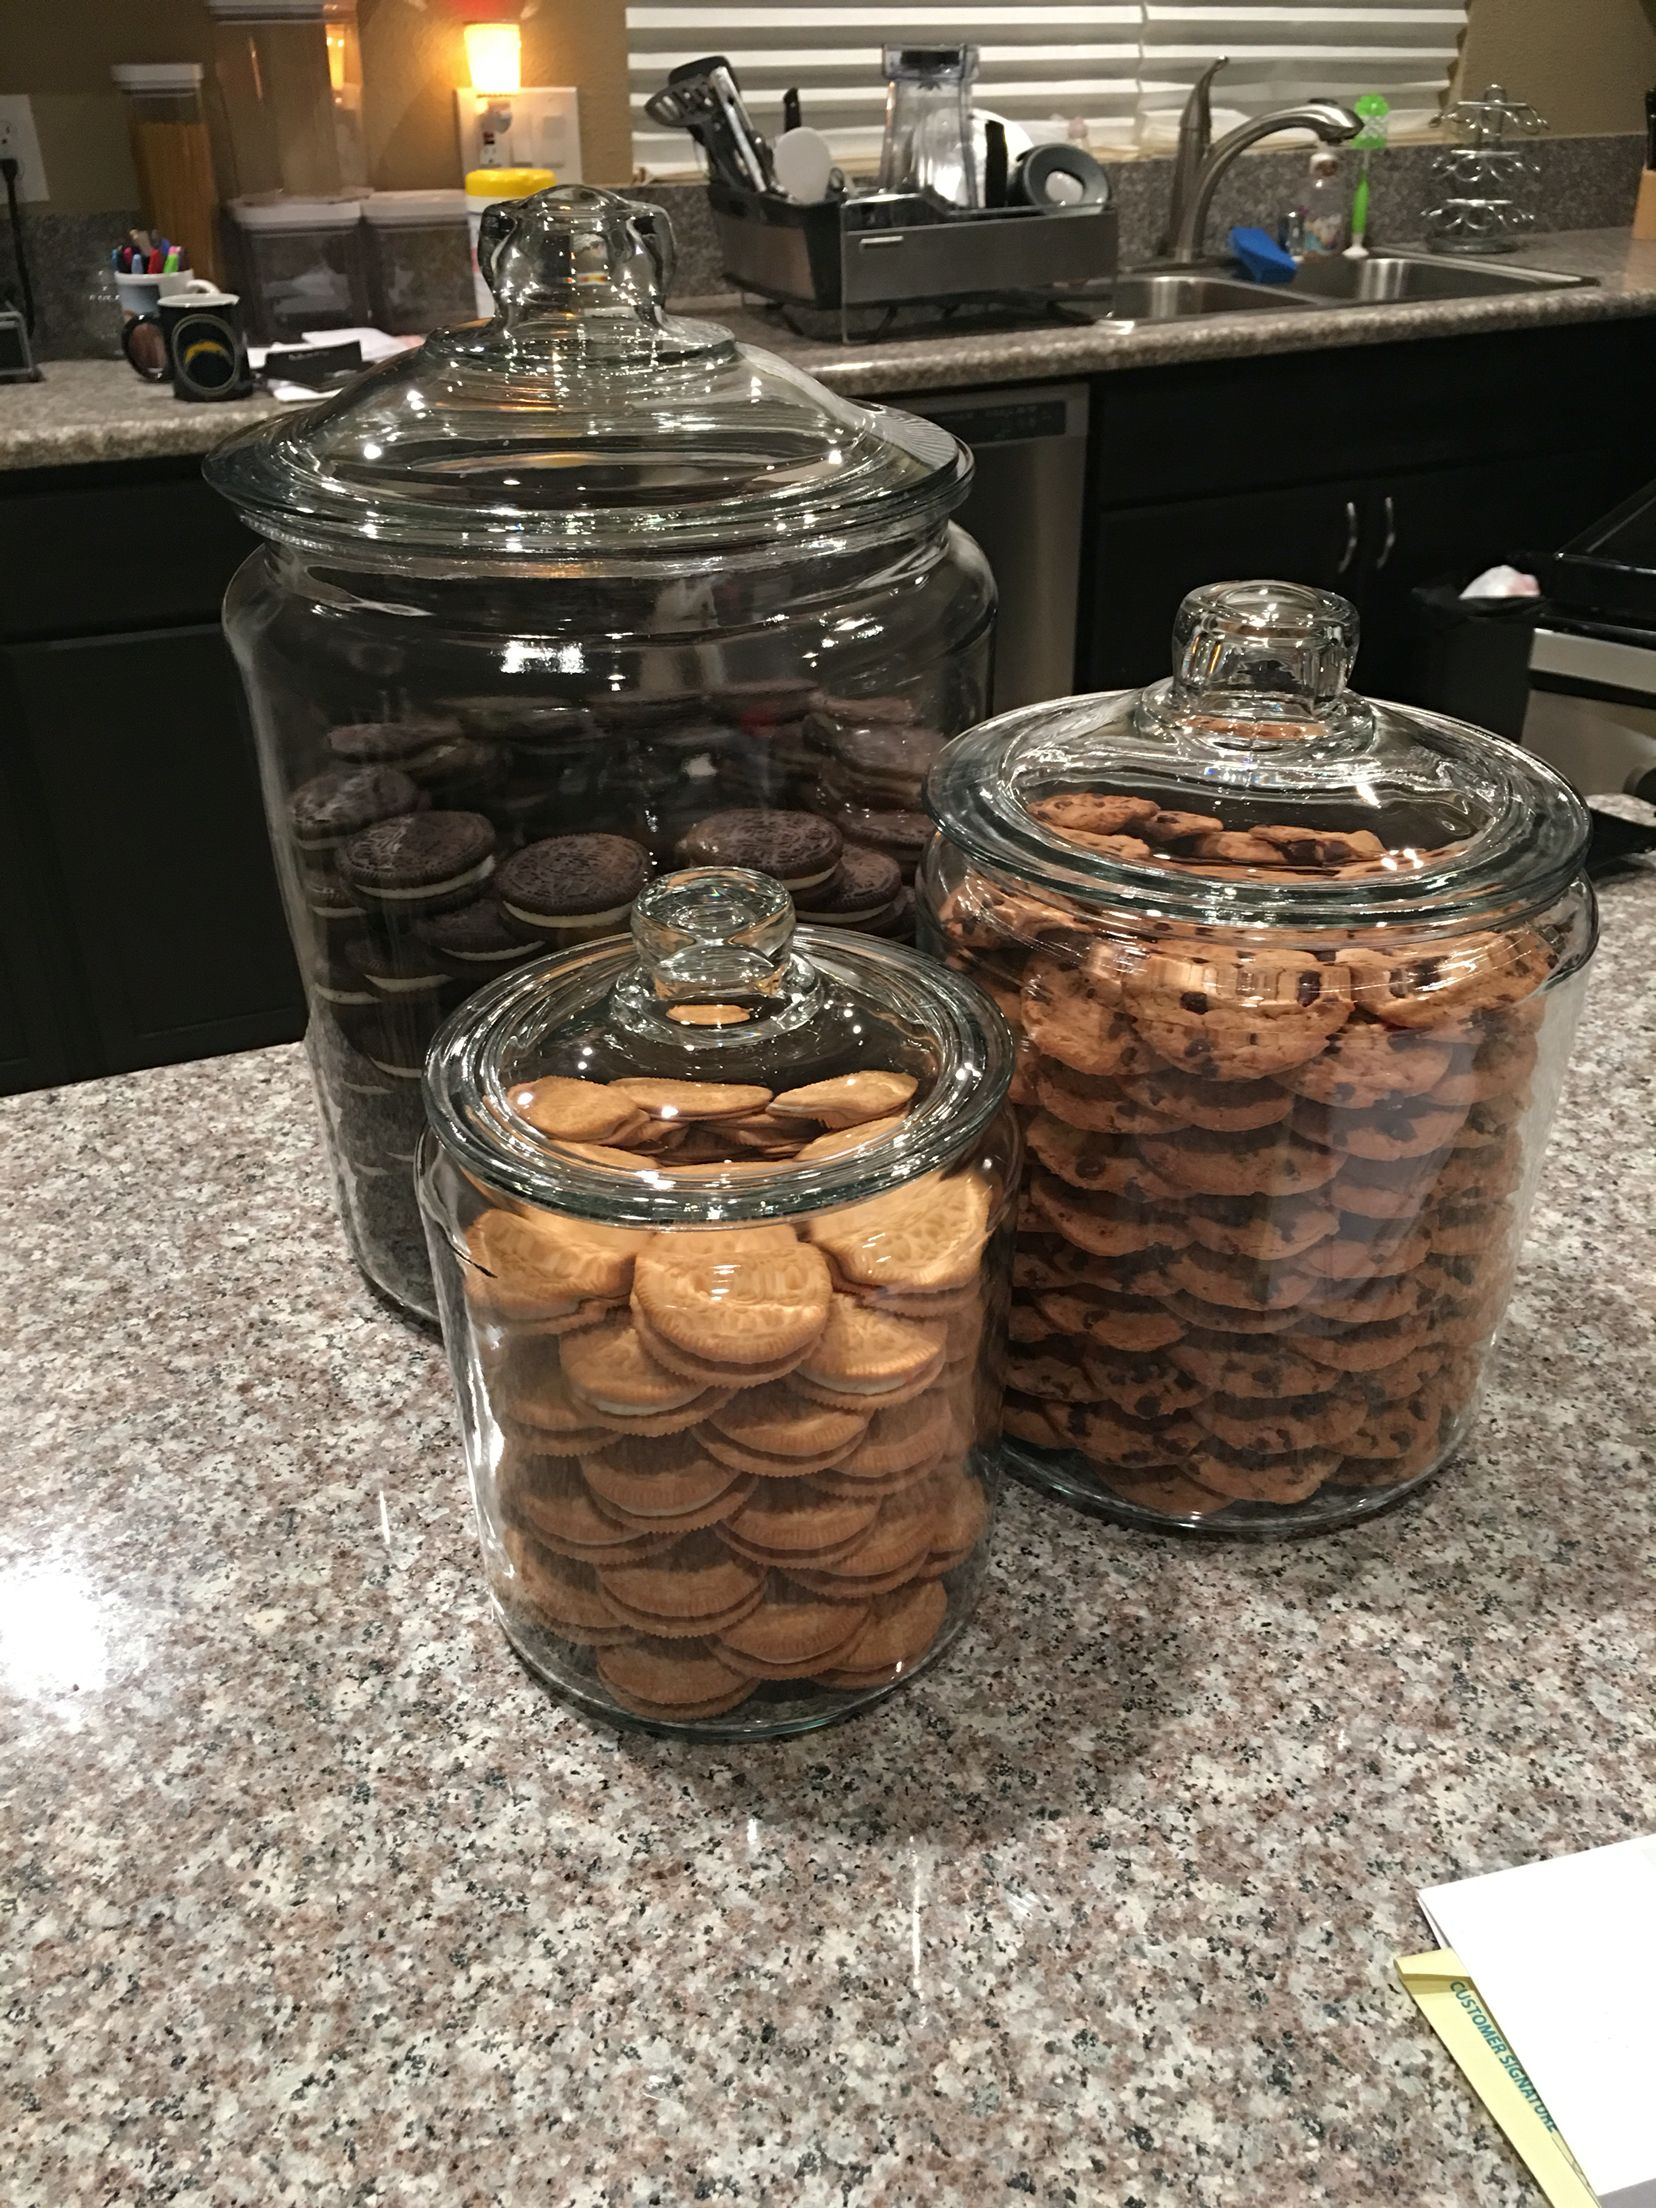 Khloe Kardashians copy cat cookie jars loved these jars she